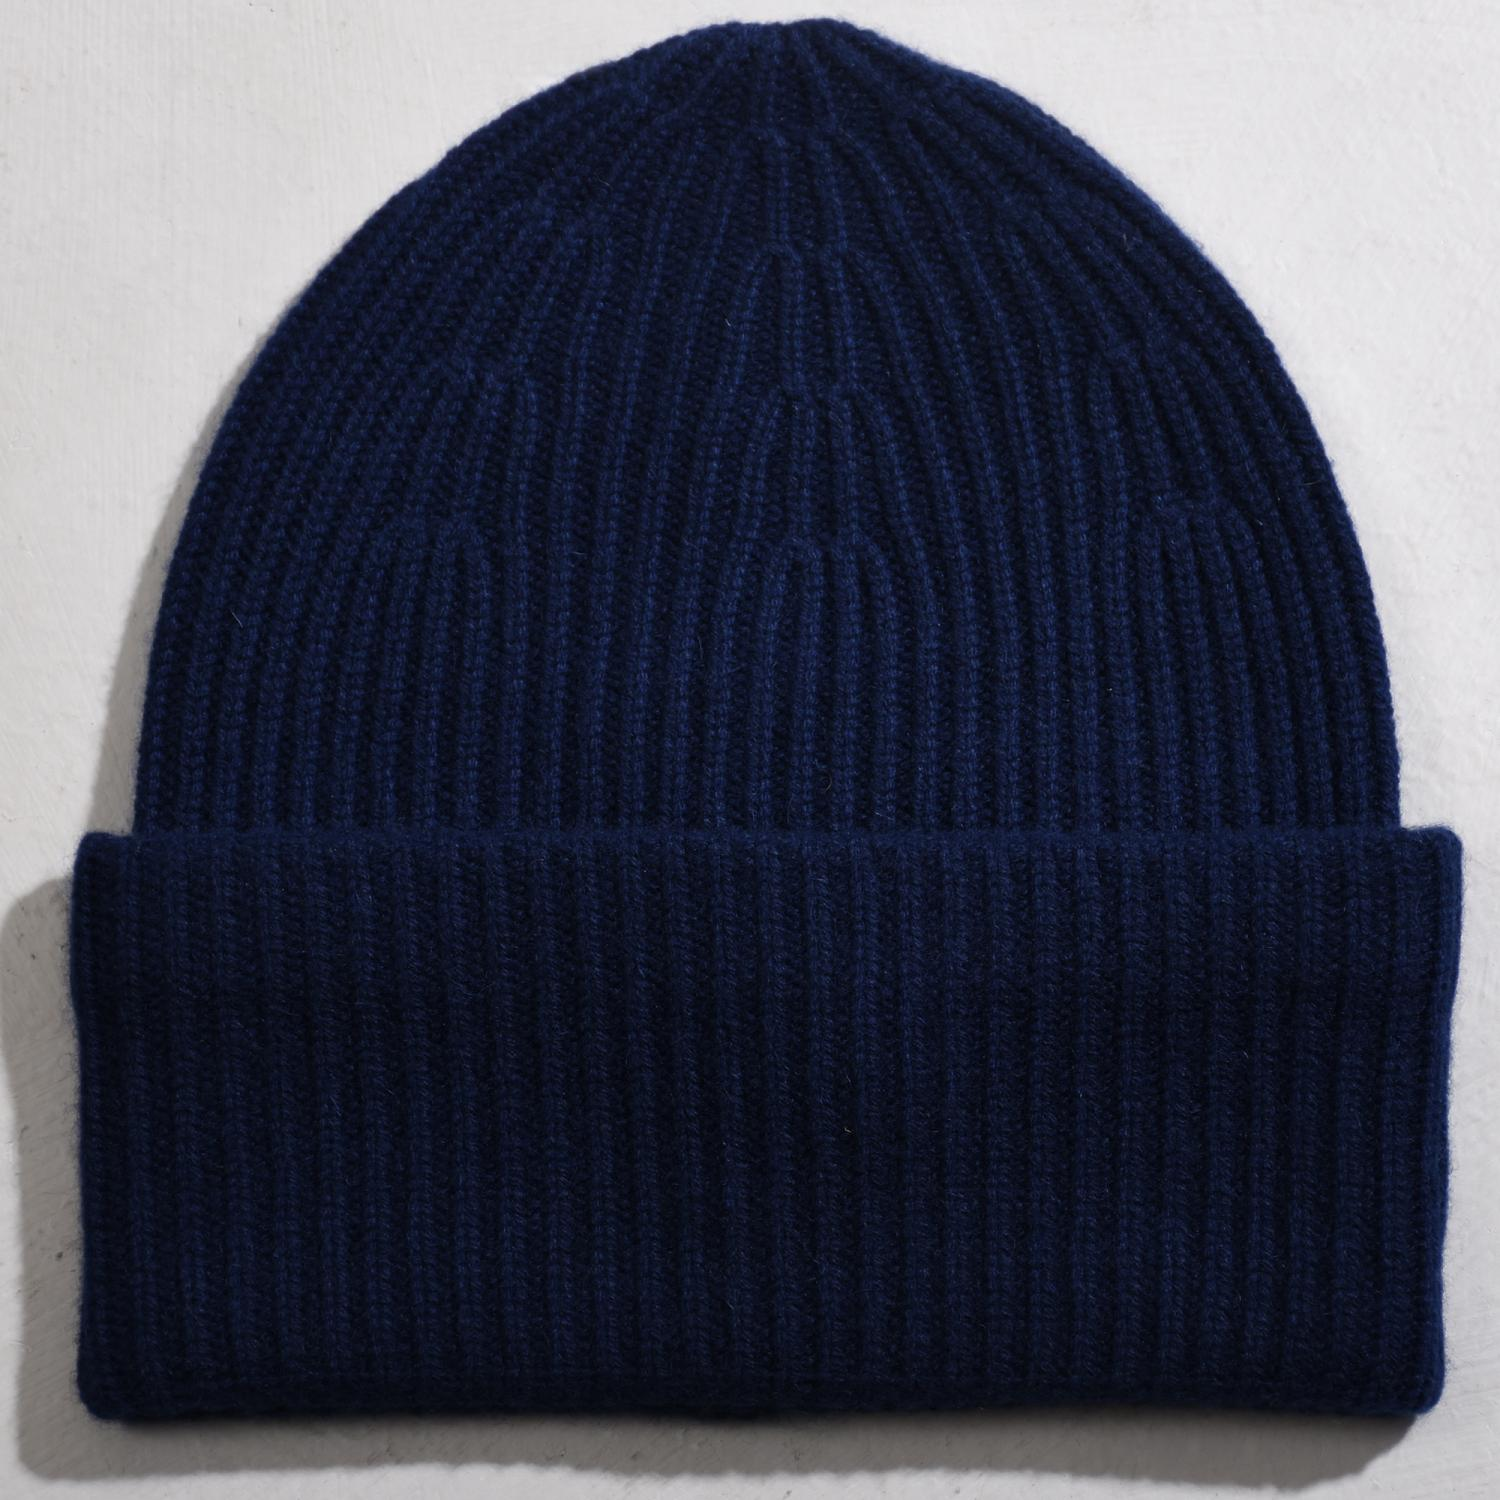 Big Hat 100% Cashmere Navy